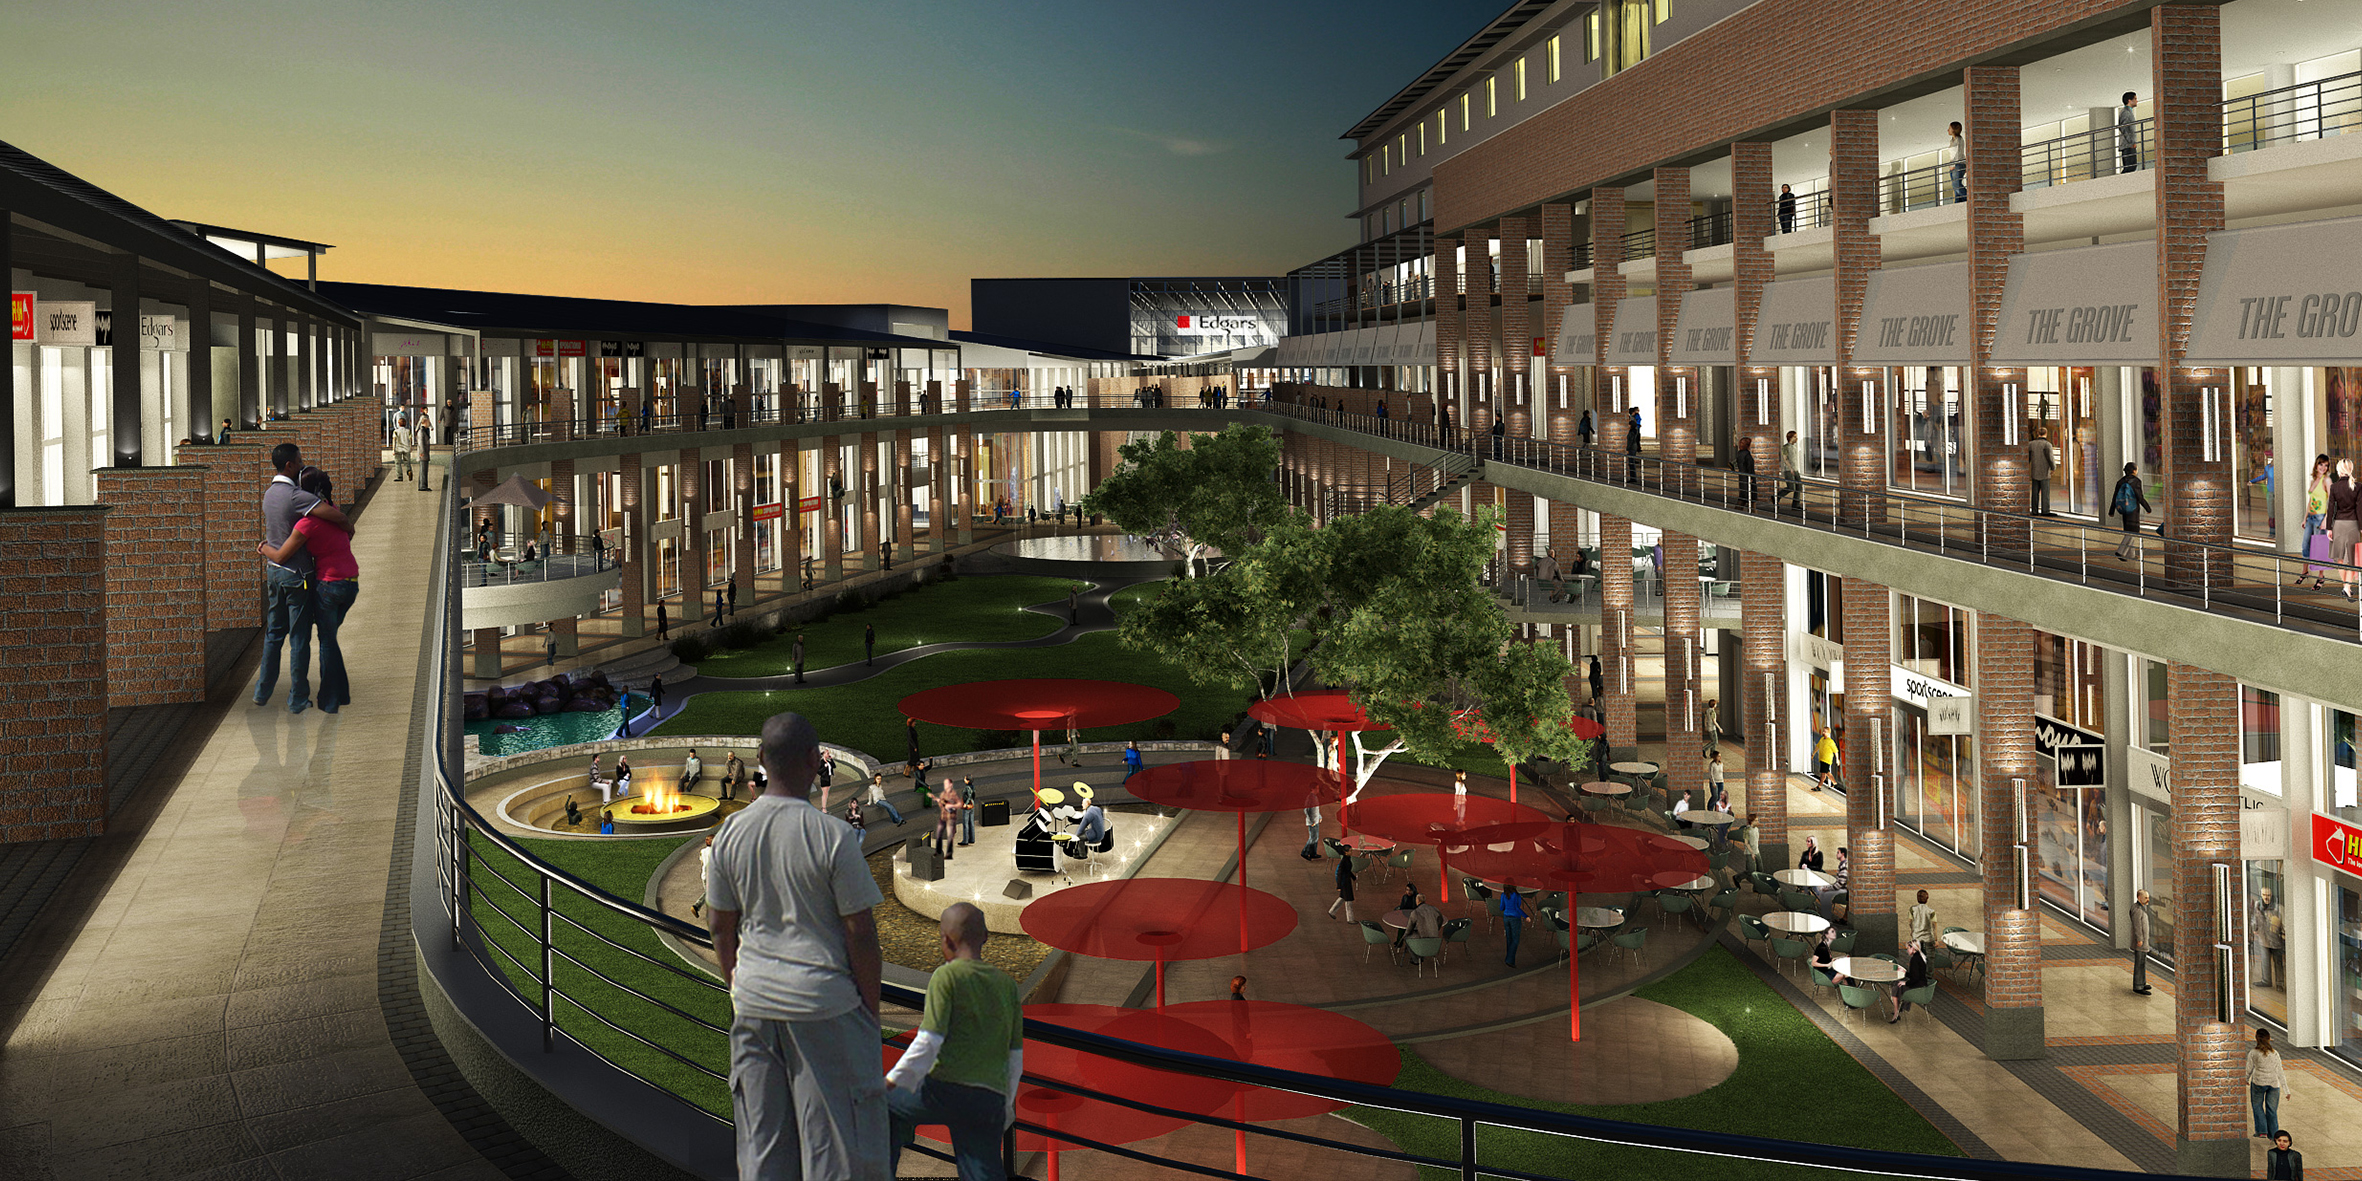 fbs - the grove, slideshow exterior coutyard dusk